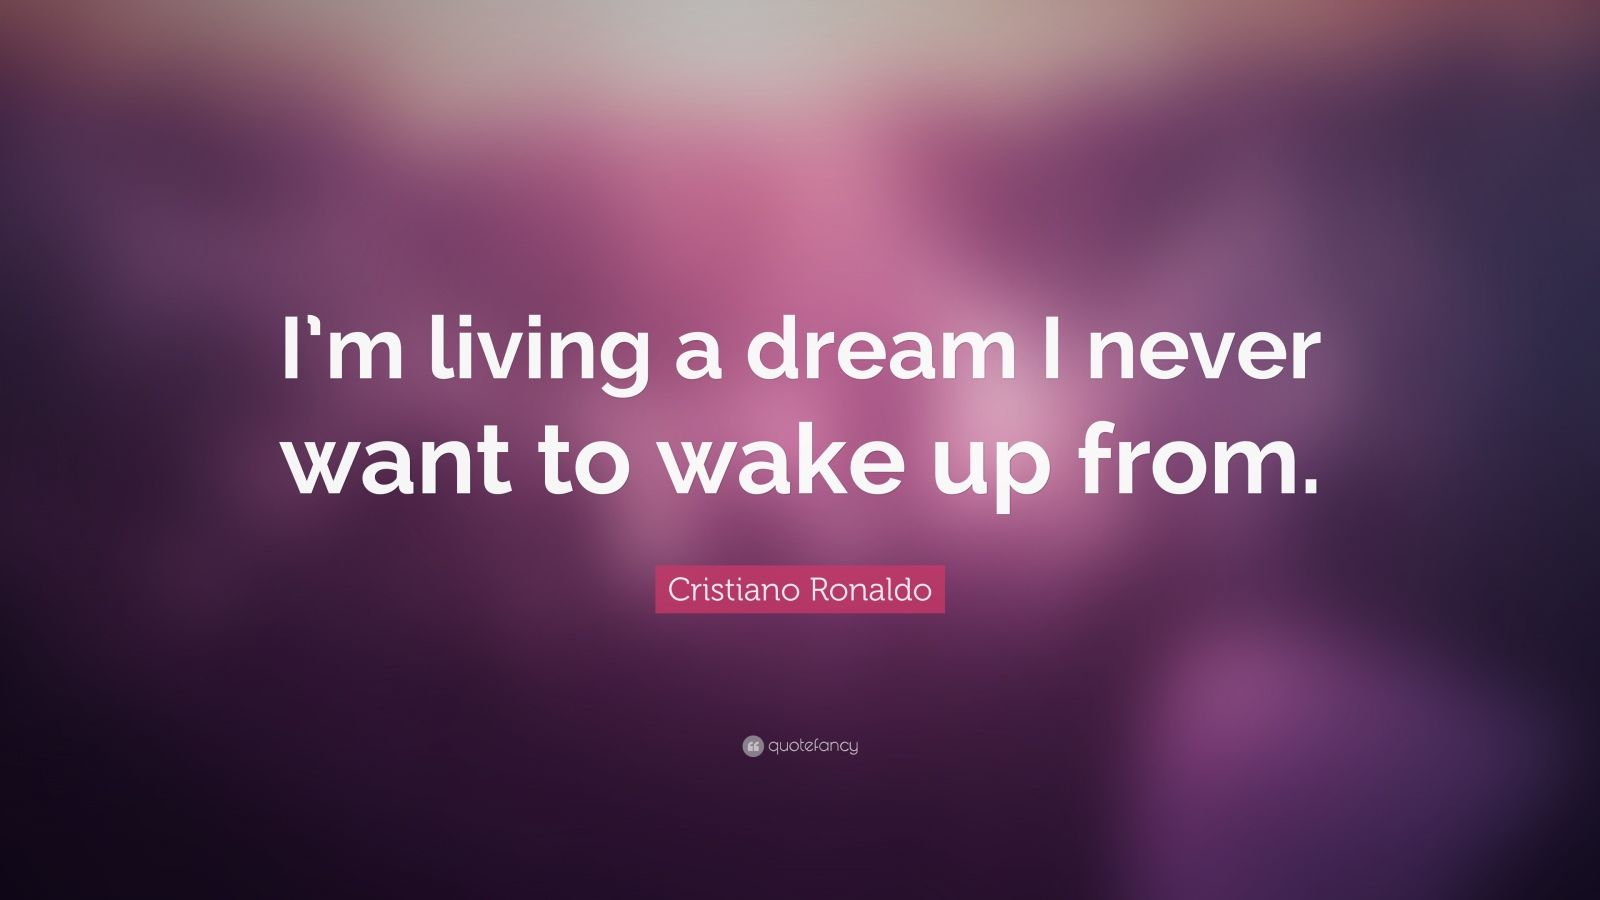 """Cristiano Ronaldo Quote: """"I'm living a dream I never want to wake up from."""""""